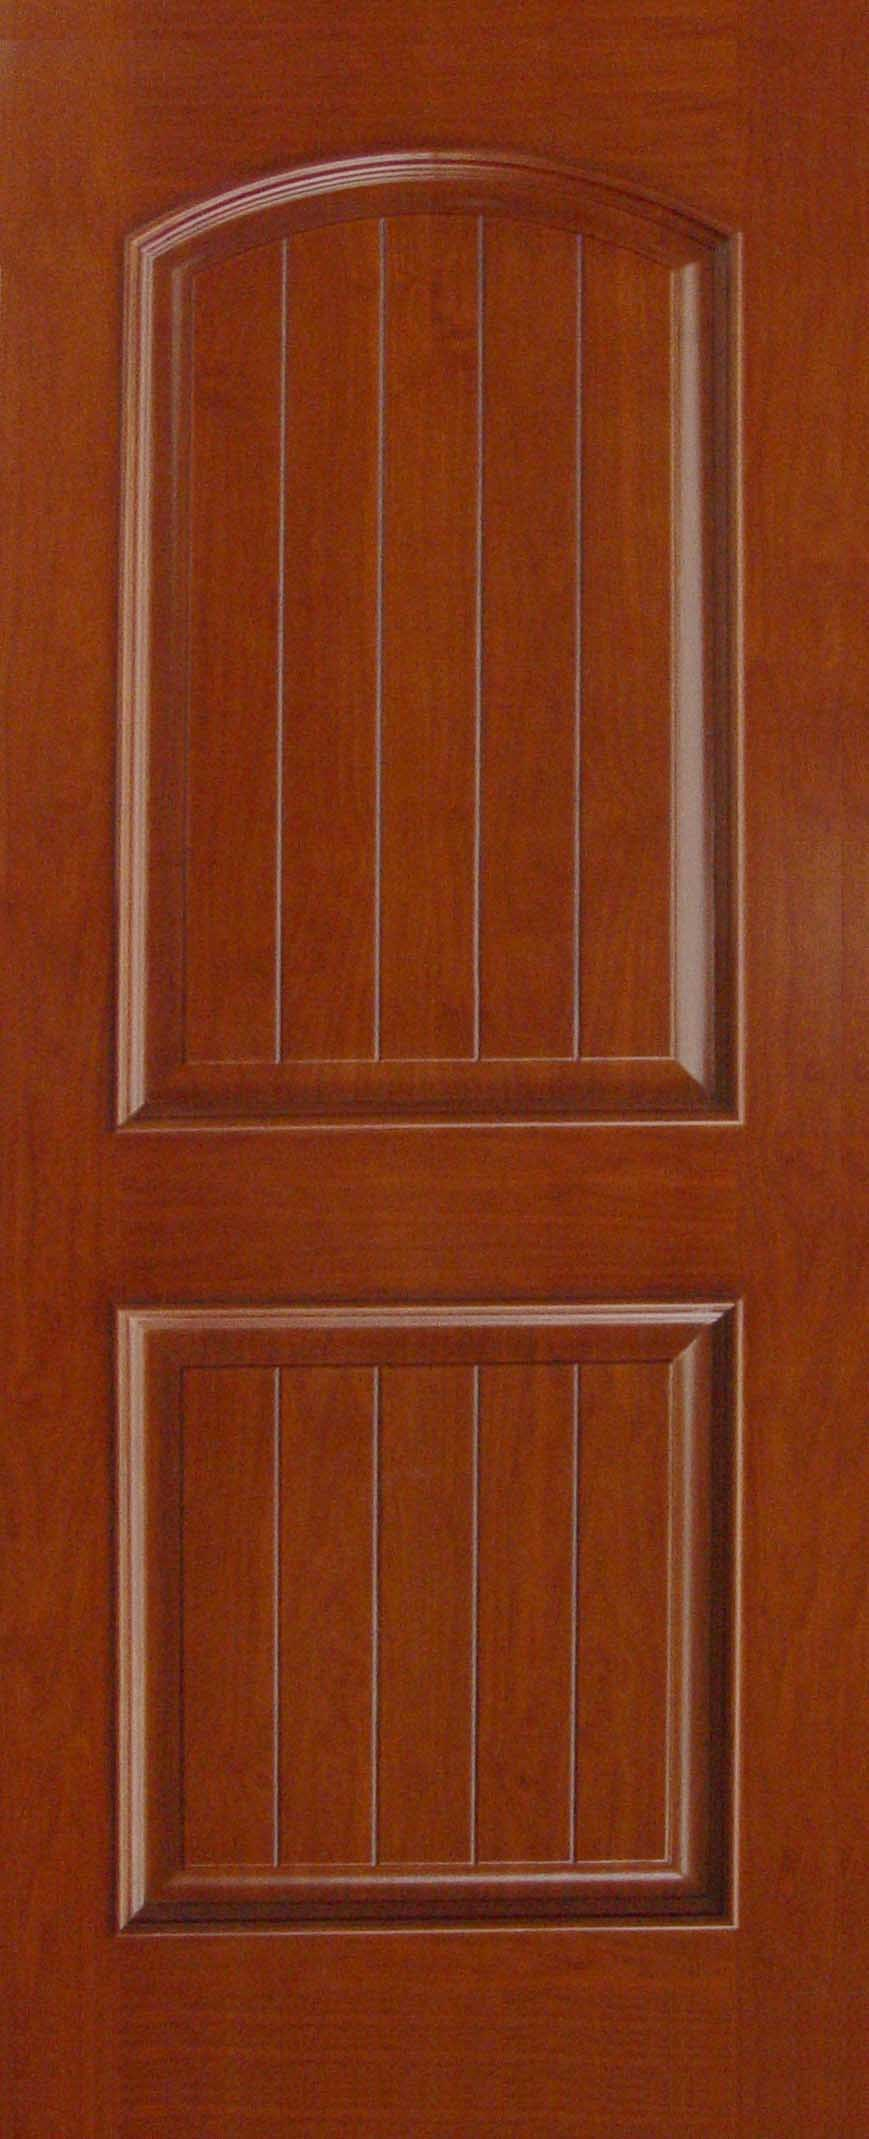 Wood Doors Product 869 x 2139 · 110 kB · jpeg